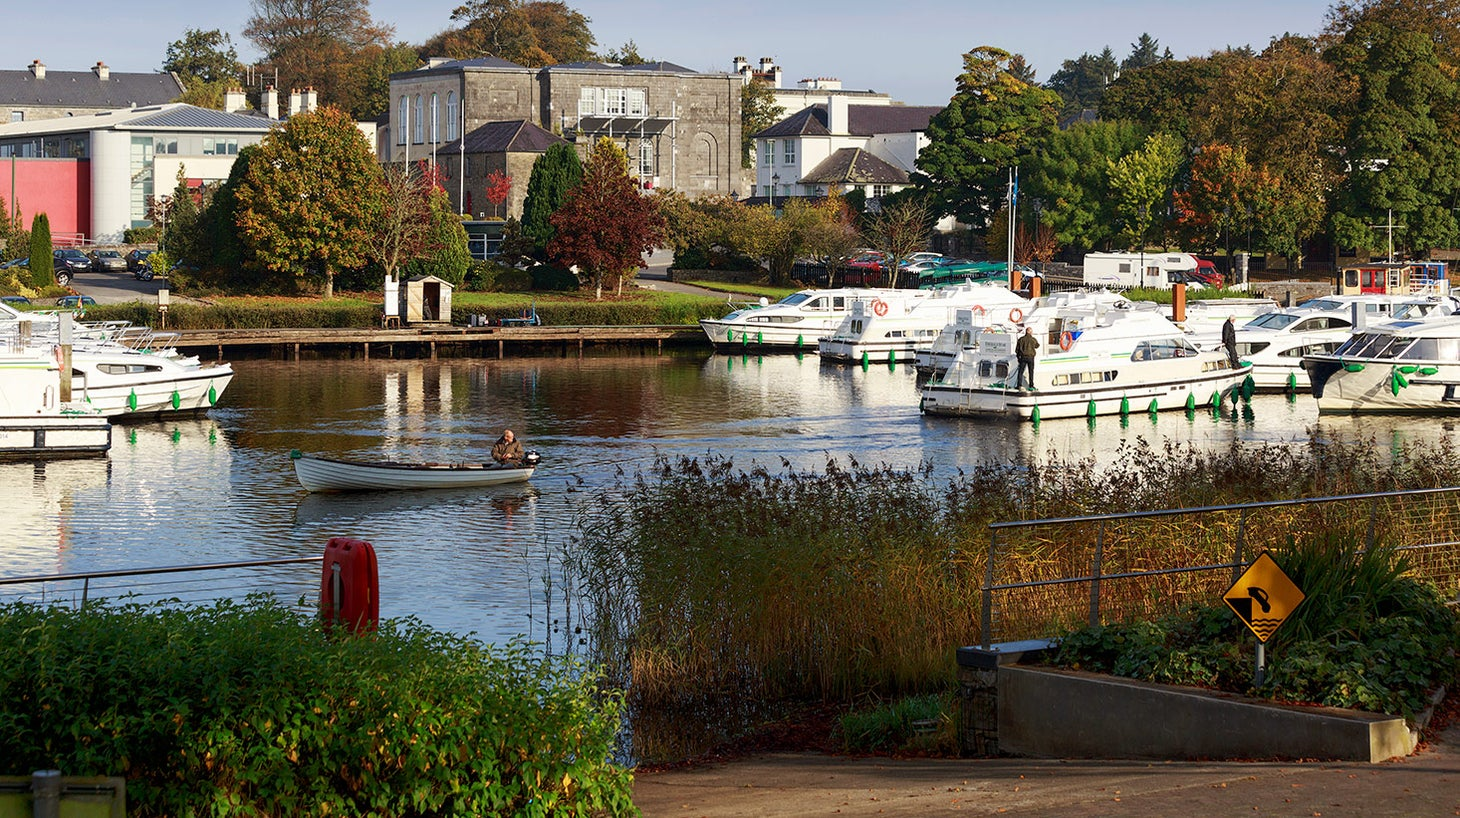 Rent a boat and cruise along the River Shannon.